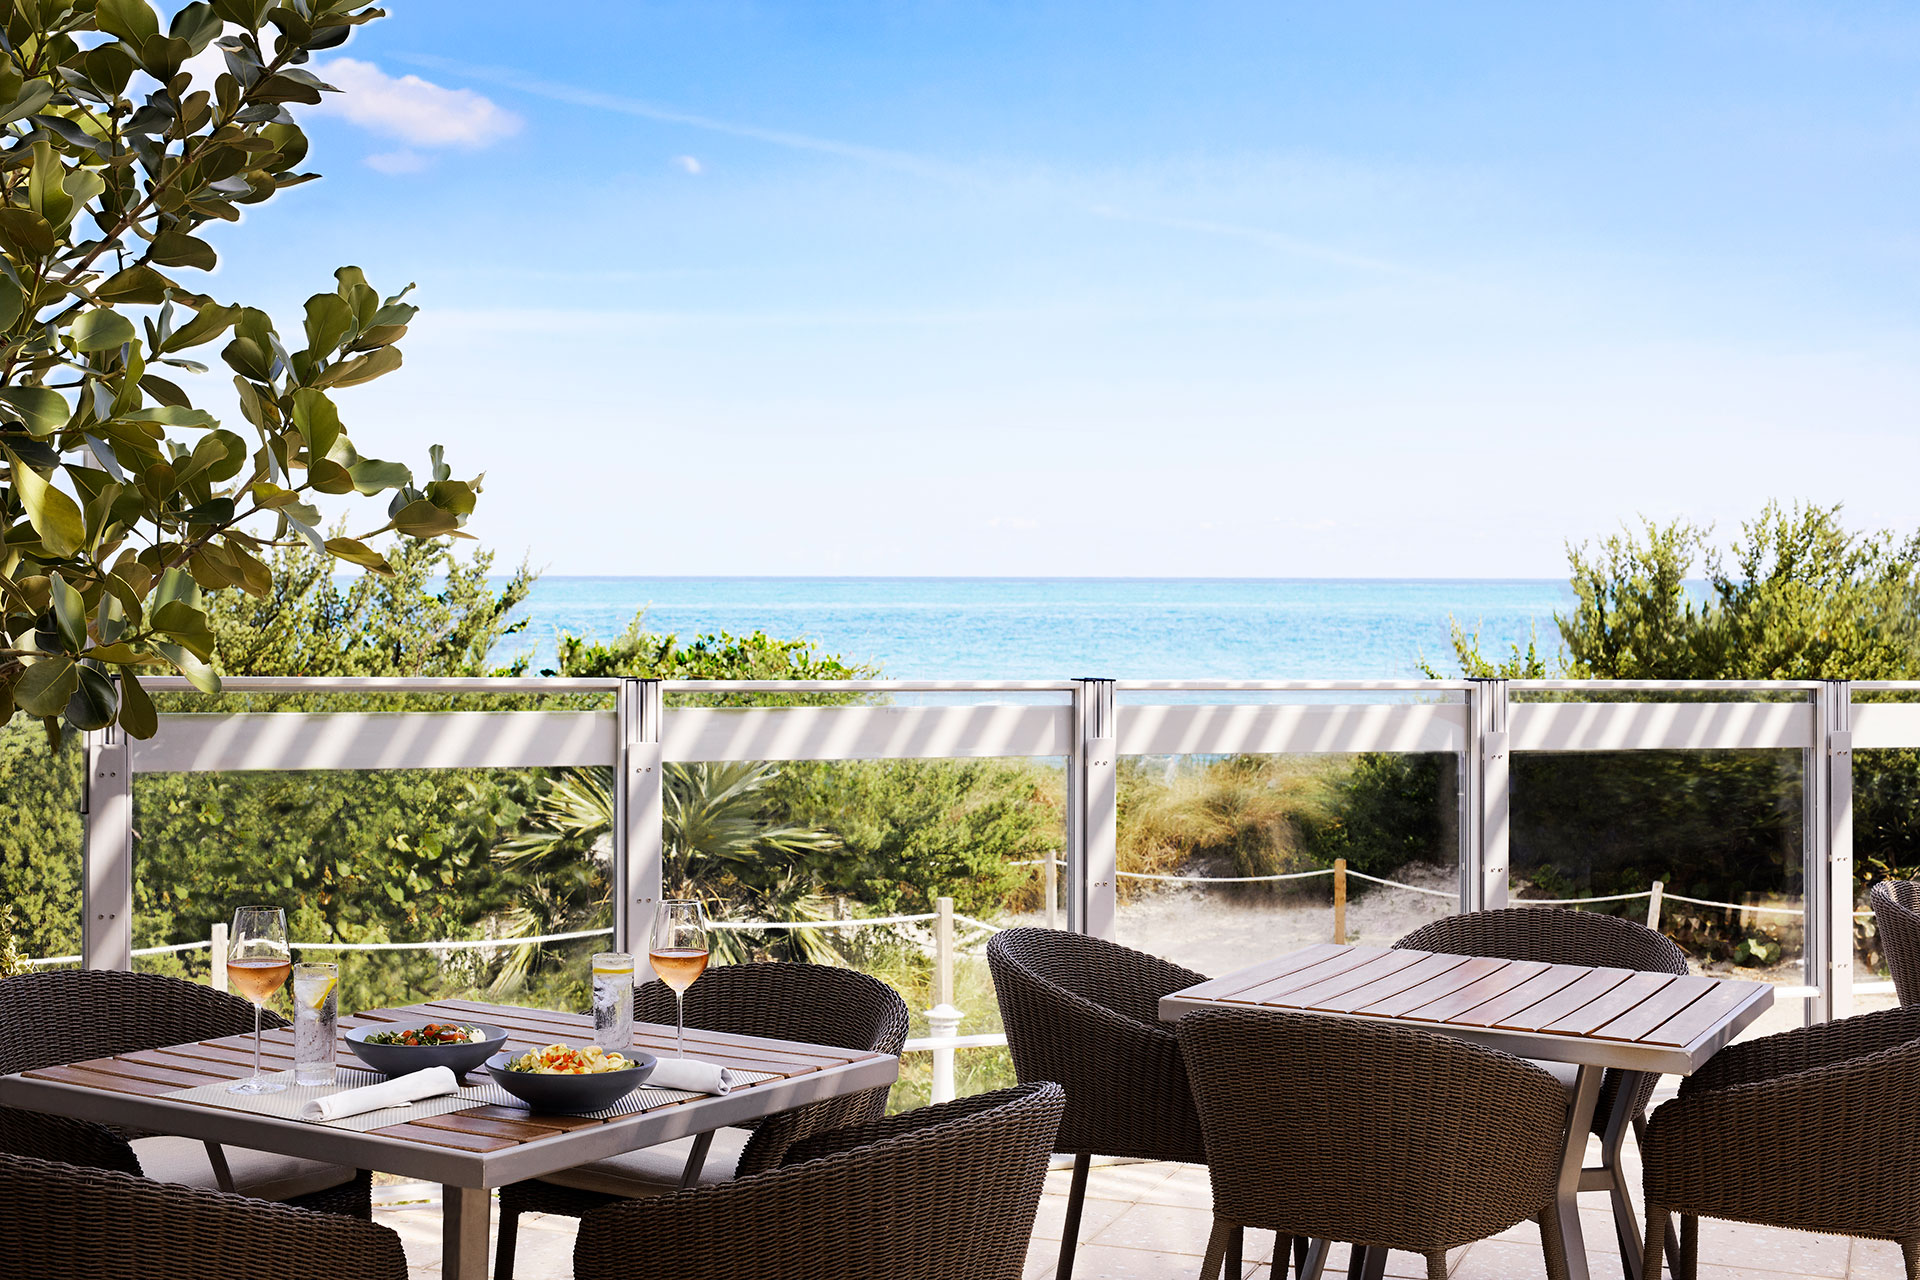 photo of an outdoor dining area. The chairs are woven brown and the tables are a dark wood. At on table there is a glass of rose at each place setting and there are two gray bowls of food in the middle of the table. The outdoor seating area overlooks the sand dunes and the ocean